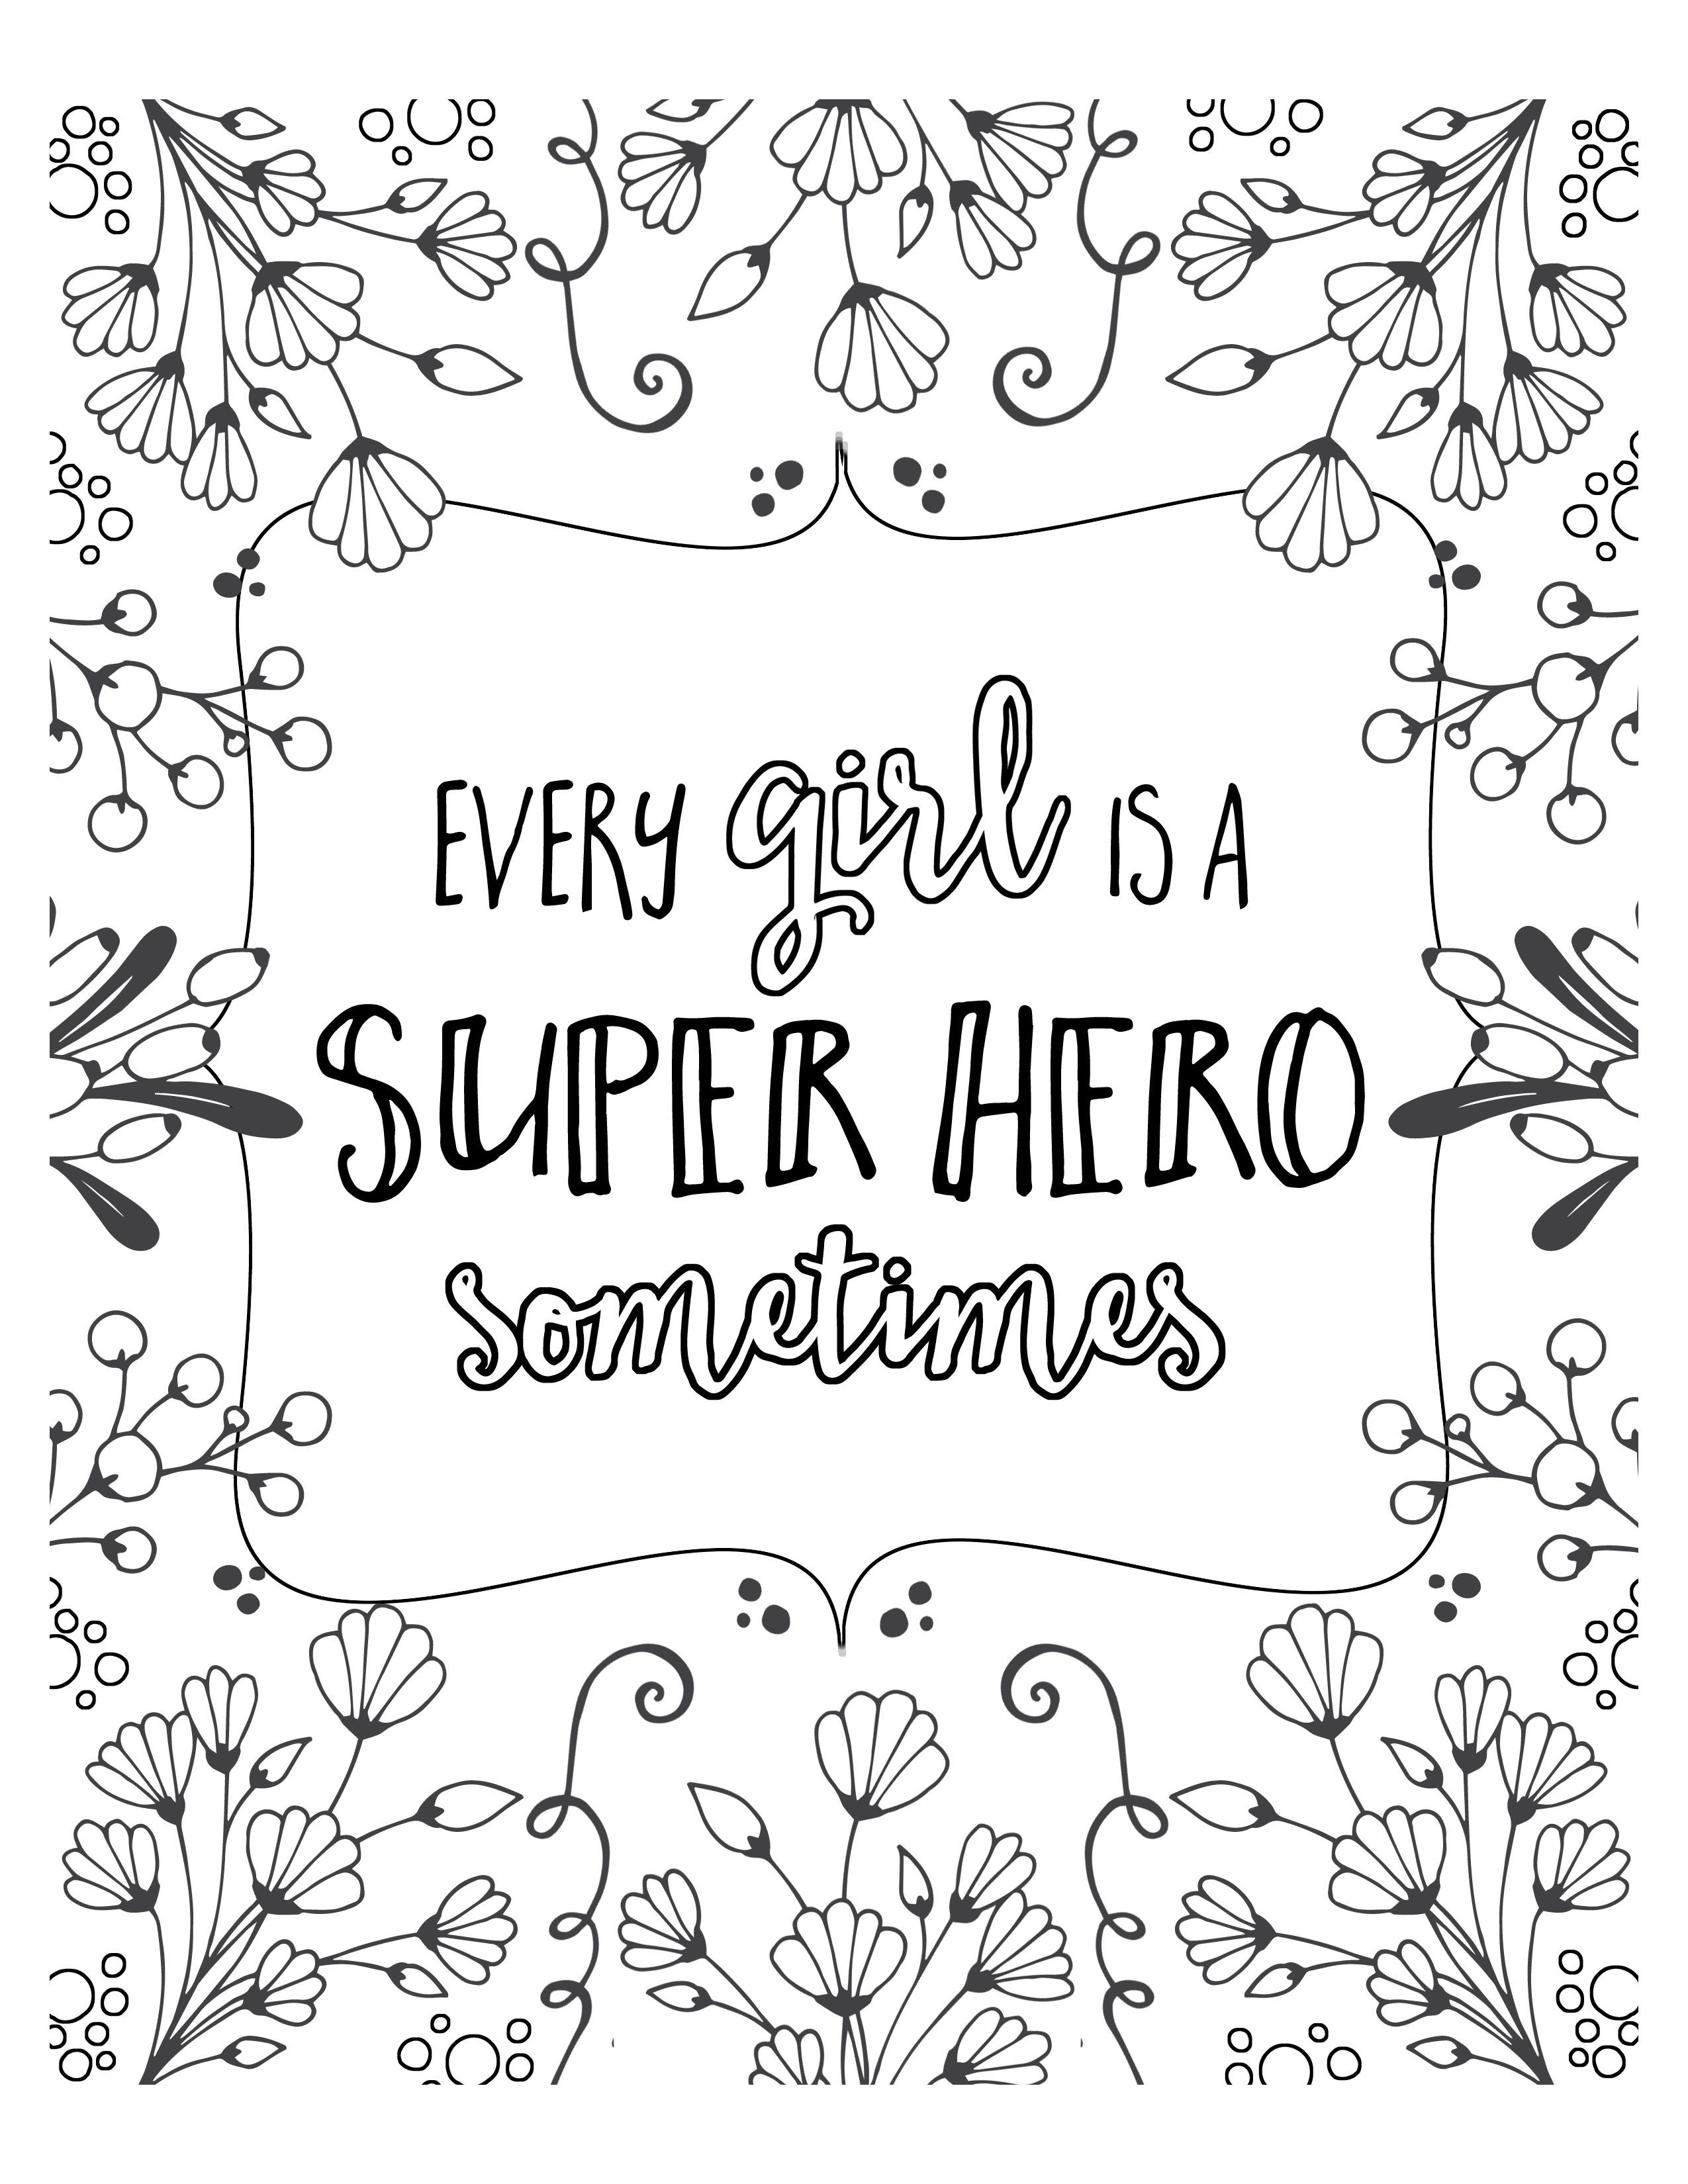 Free Super Hero Coloring Pages Let S Diy It All With Kritsyn Merkley Quote Coloring Pages Free Coloring Pages Coloring Pages For Kids